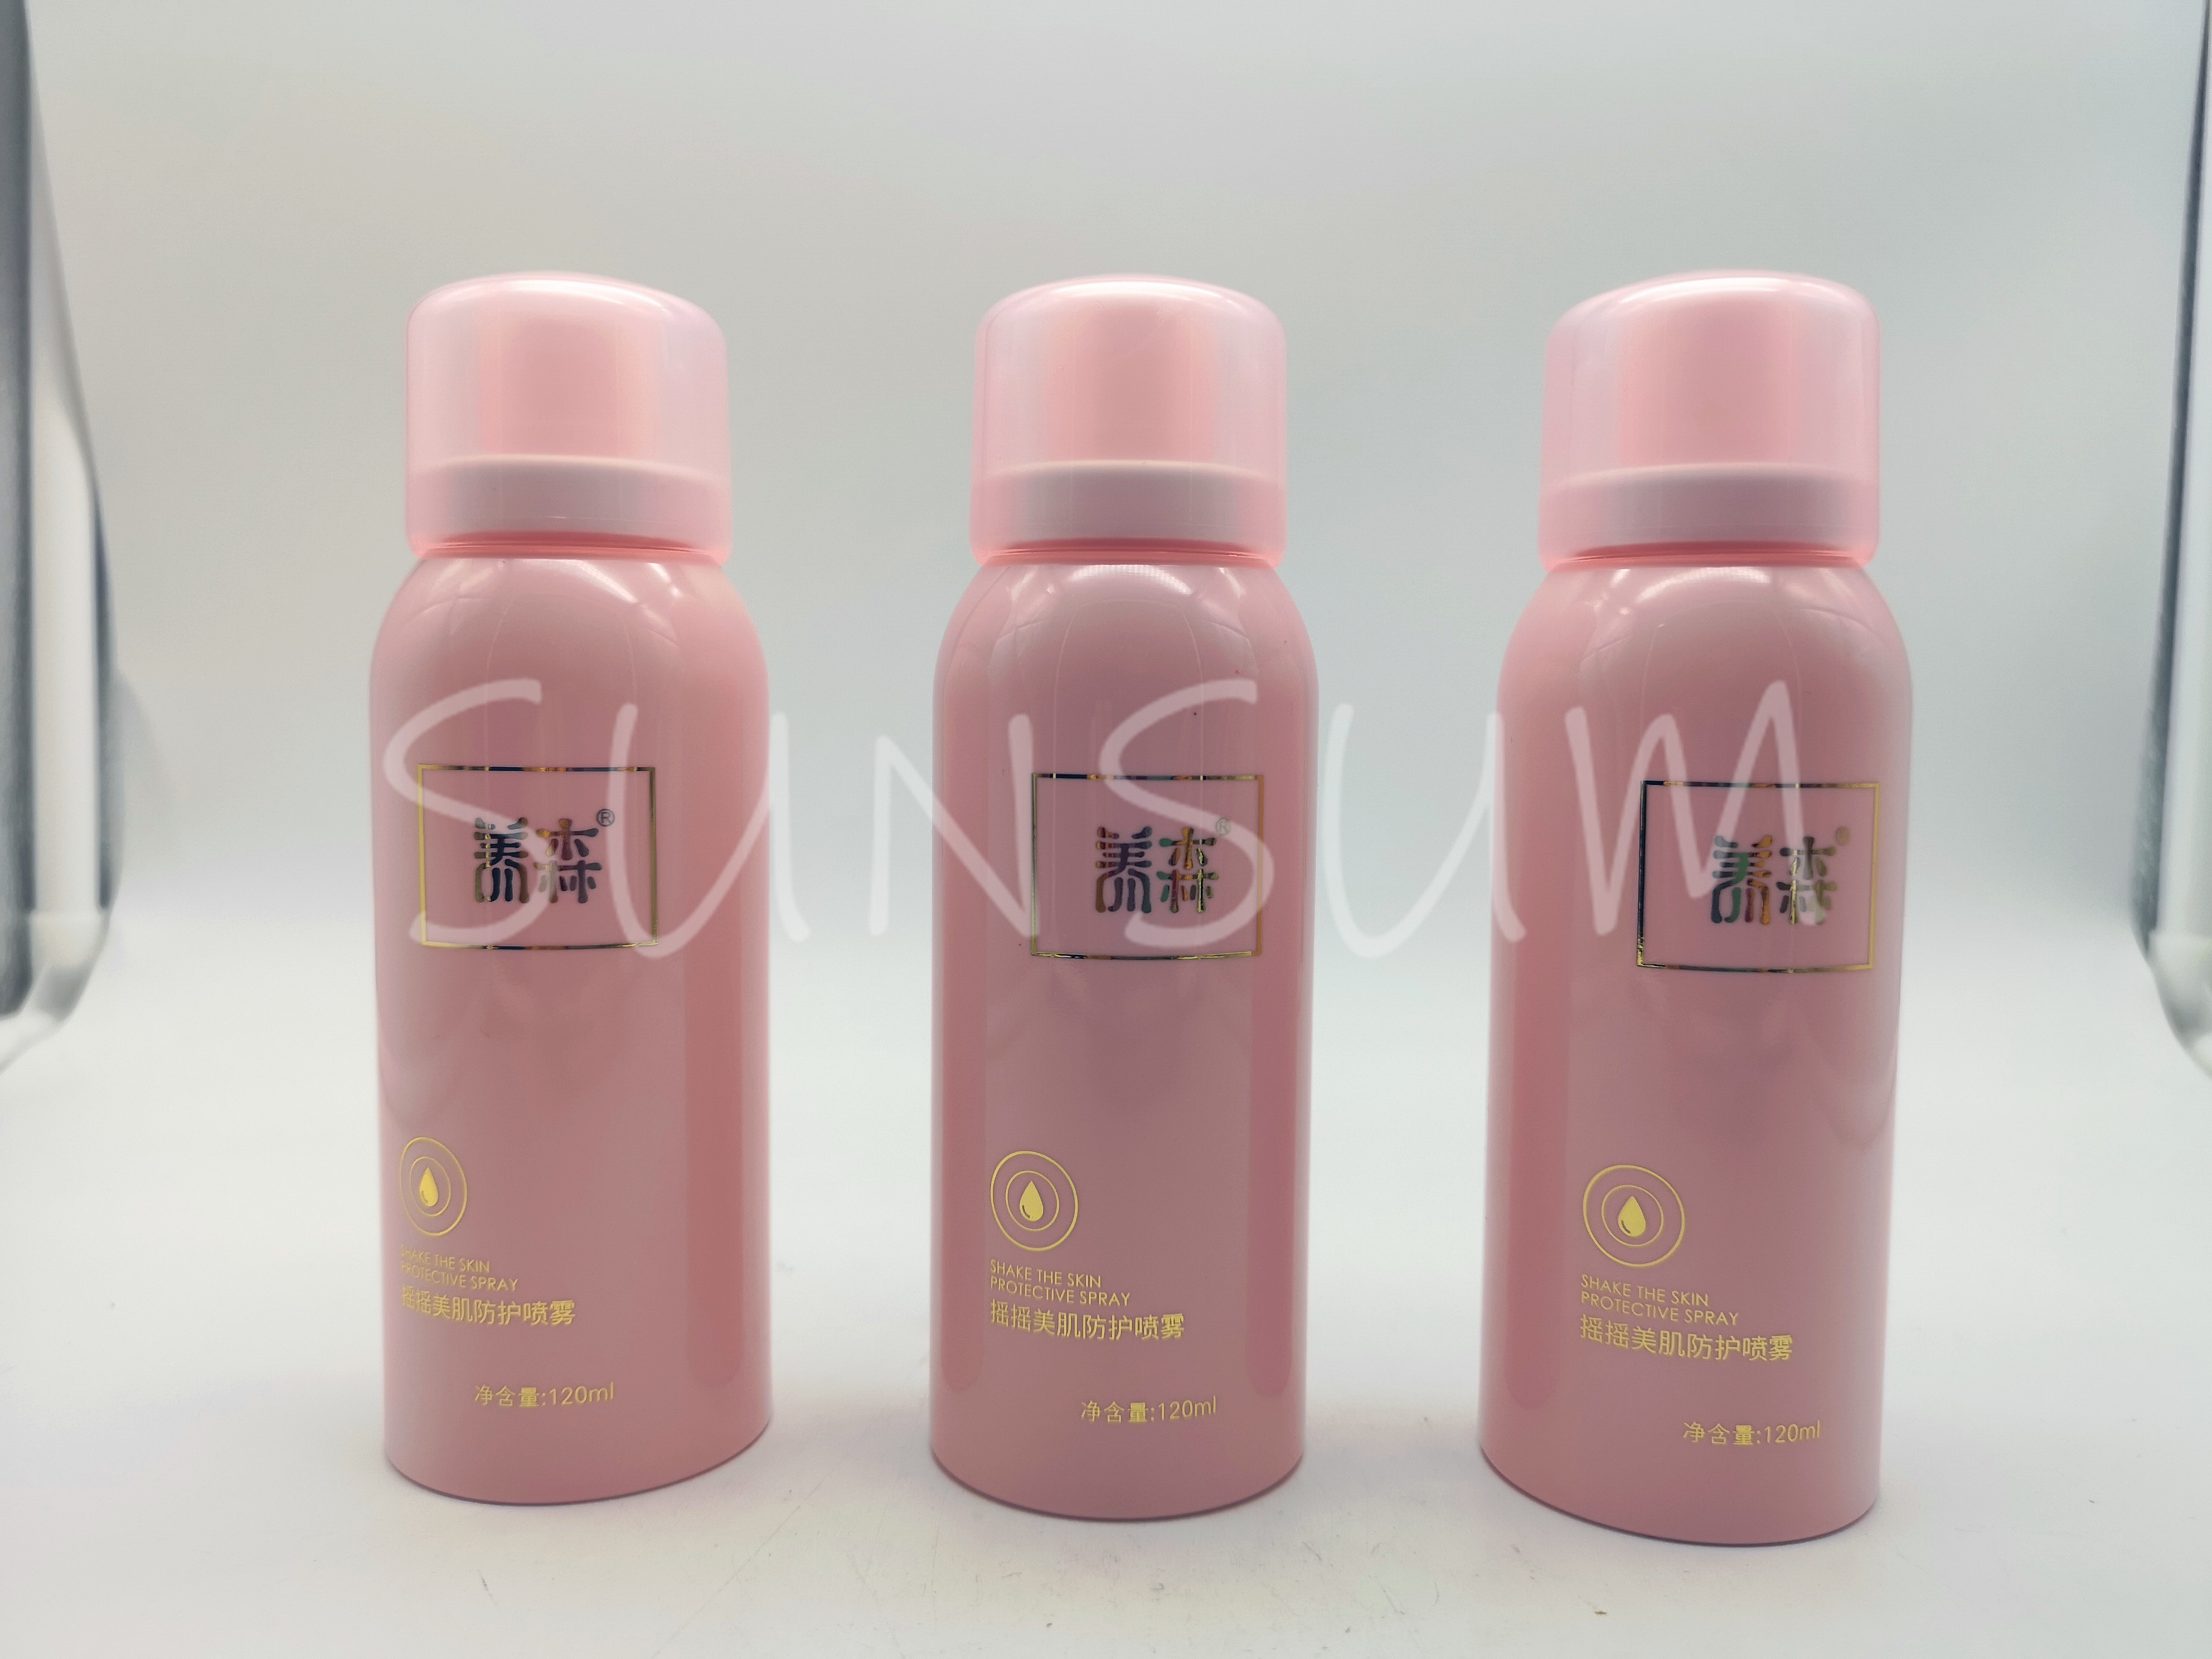 120ml spray pump bottle